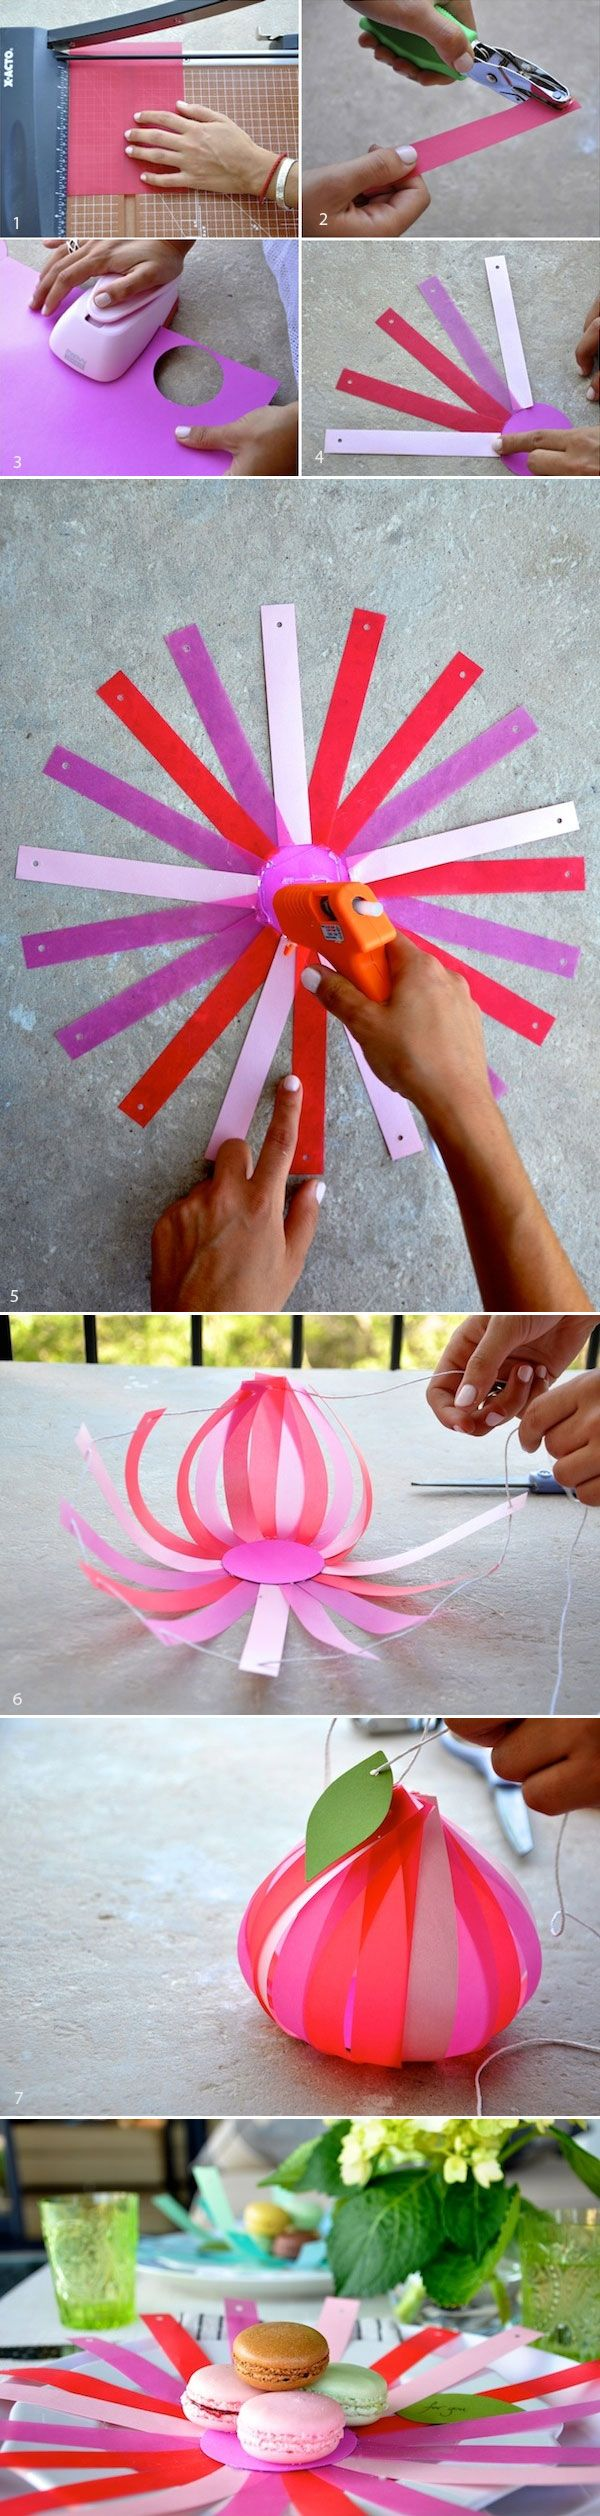 Cute idea for giving gifts